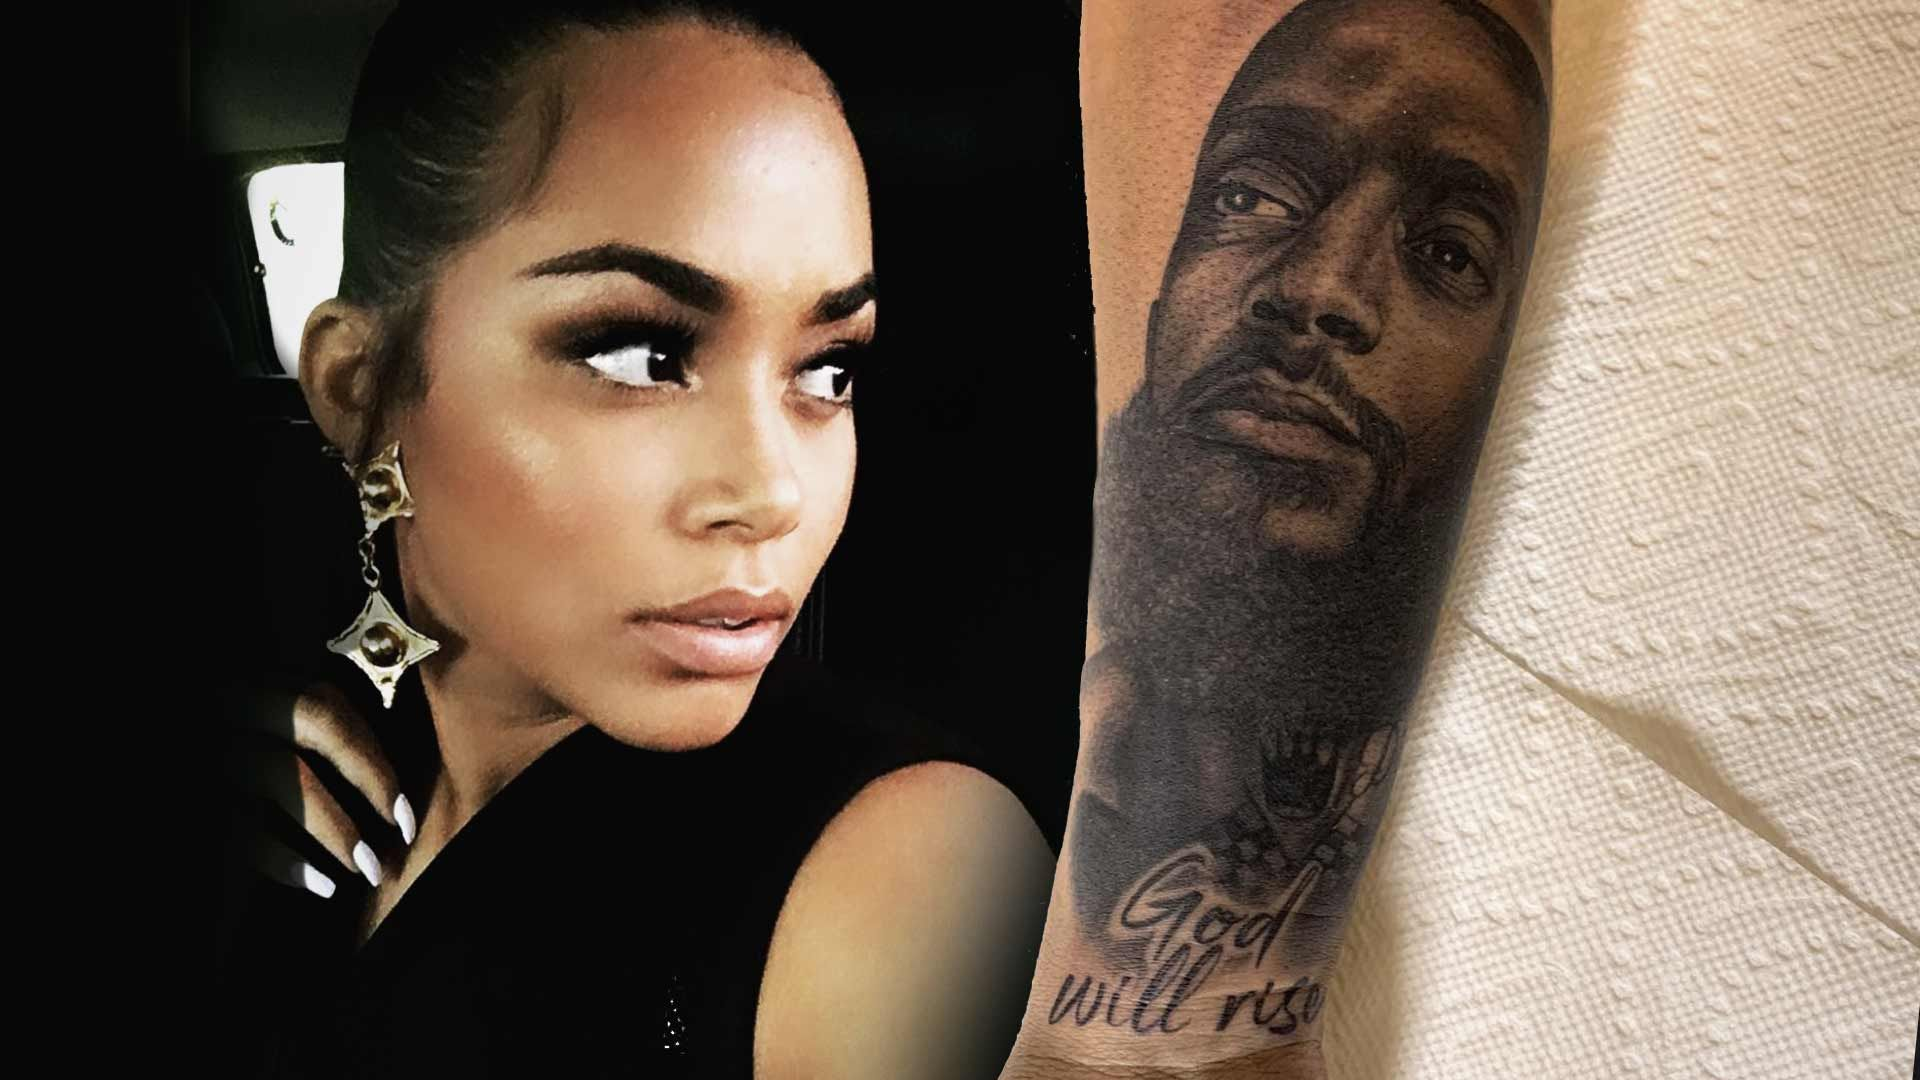 Lauren London Gets Nipsey Hussle's Face Tattoo on Her Arm